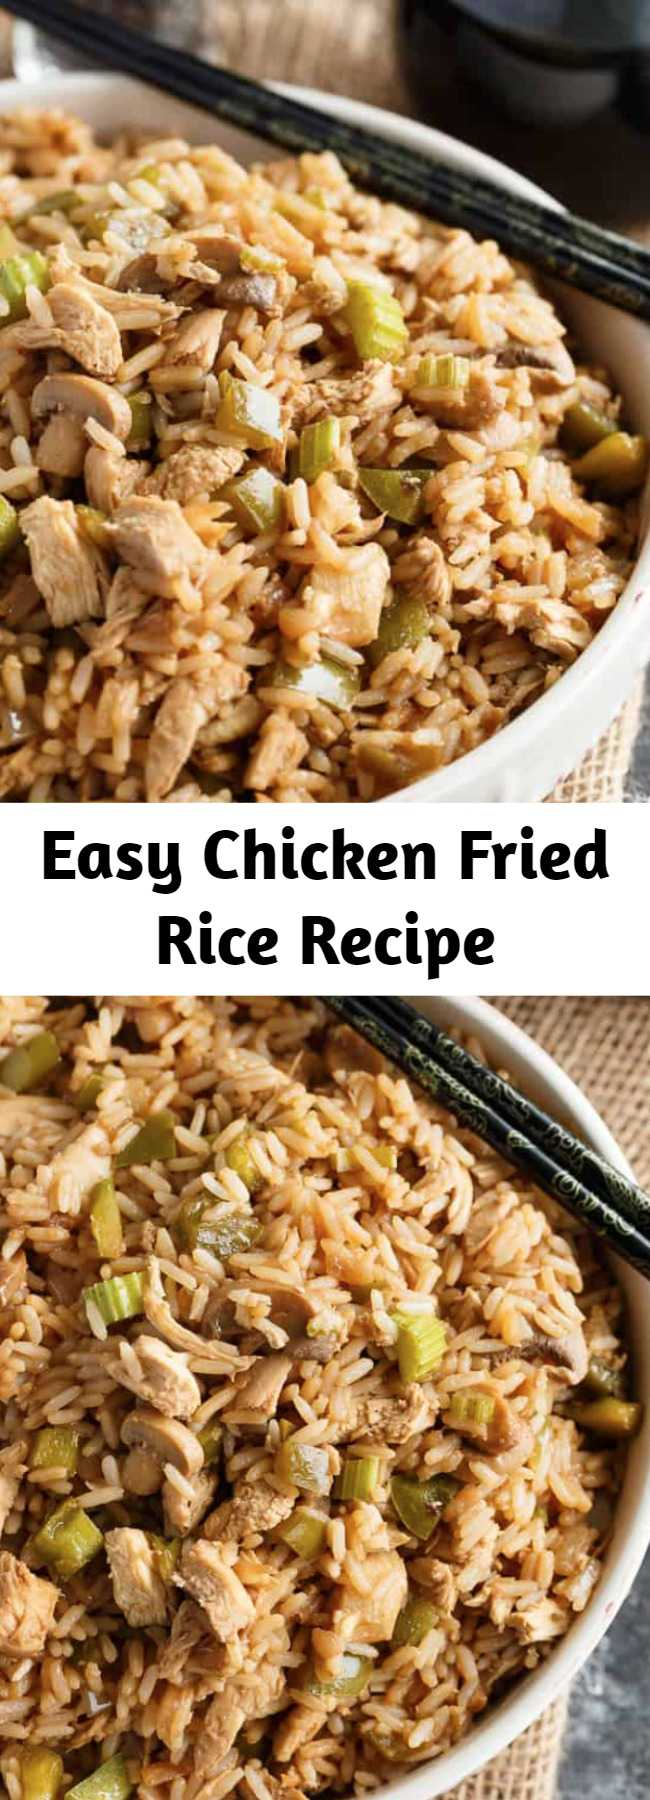 Easy Chicken Fried Rice Recipe - Skip takeout and make homemade Chicken Fried Rice! Tender rice that is loaded with veggies, spices, and, of course, pieces of chicken in every bite. A must-make rice recipe. This is a recipe that the entire family would enjoy AND it's easy (and inexpensive) to make. You can make it last for an extra day or two with leftovers!